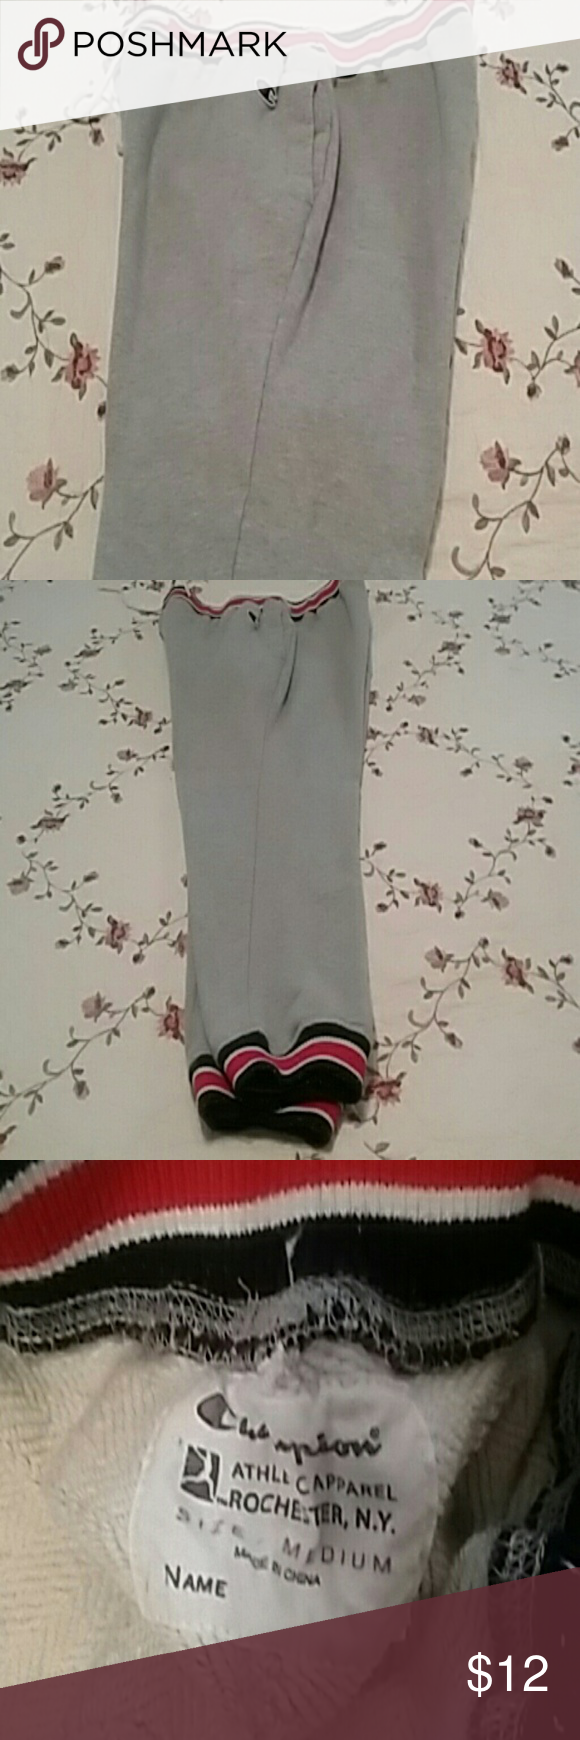 Men's sweats They are size medium have pockets and are a thicker material. They are grey with red, blue and white stripes around the waist and feet. These sweats are in great condition. They have a little lent on the waist but that can be removed. The string is still in the waist line also. Champion Pants Sweatpants & Joggers